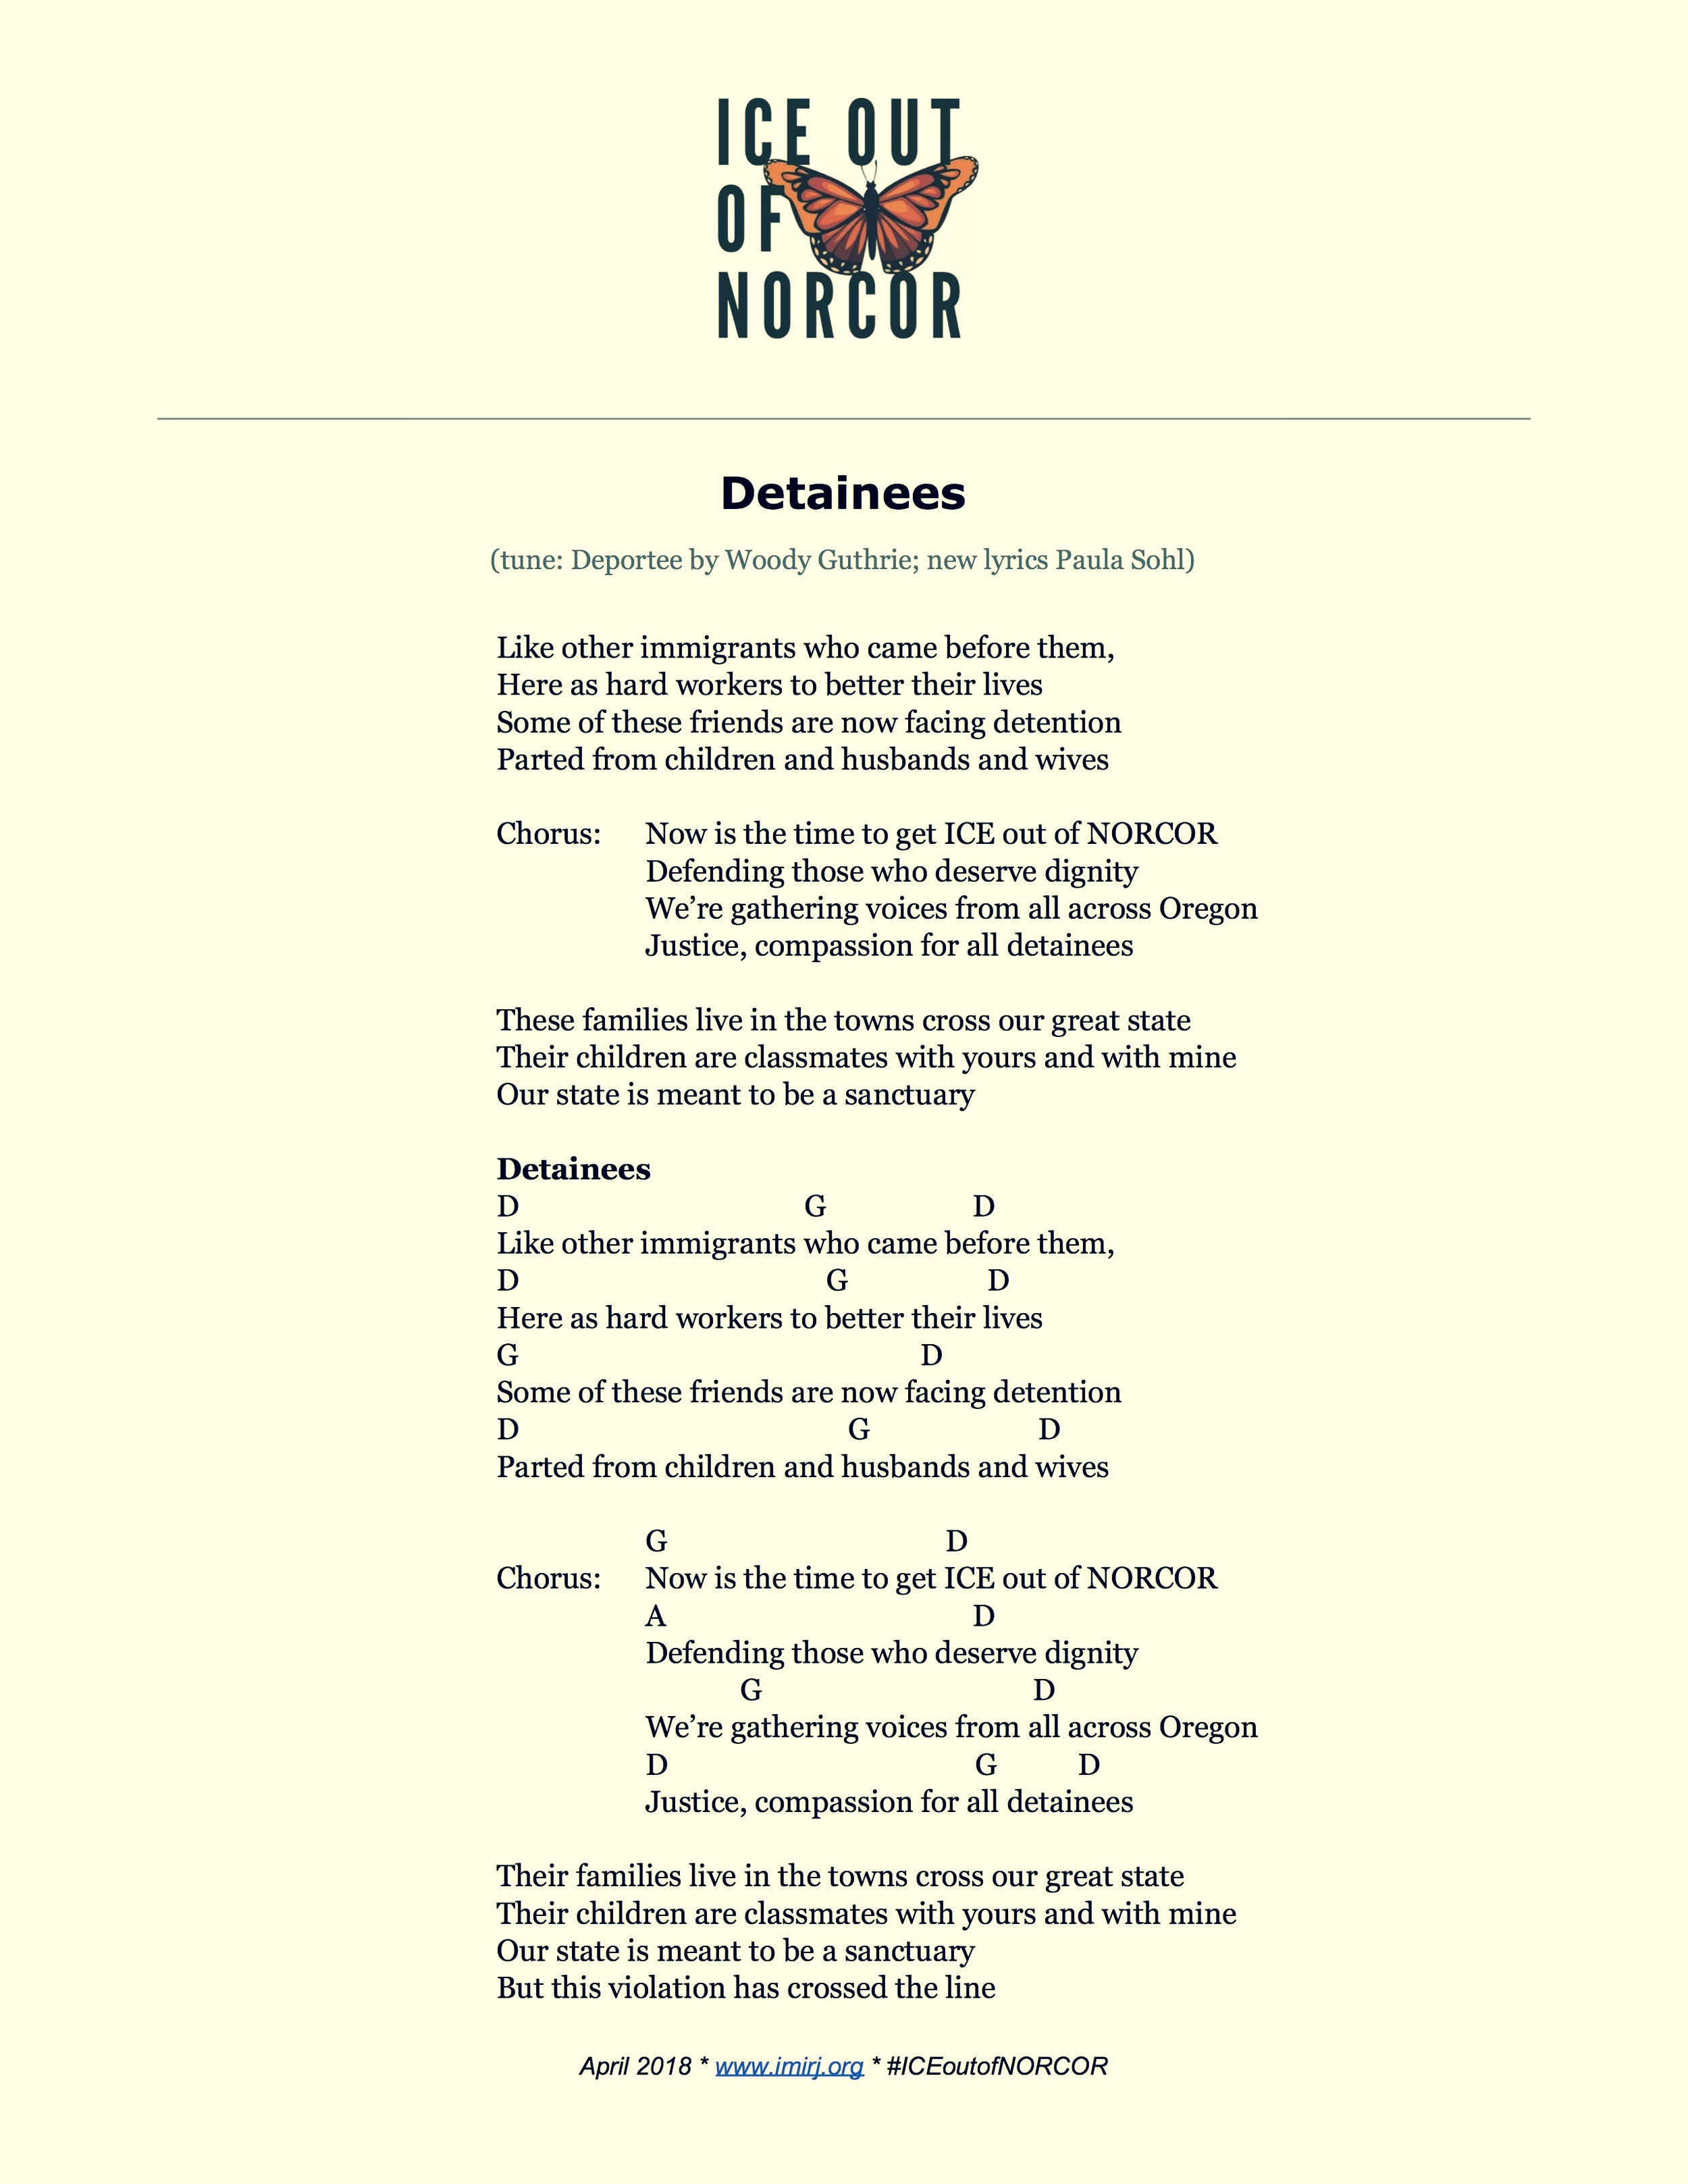 Song: Detainee (to the tune of Deportee by Woodie Guthrie)